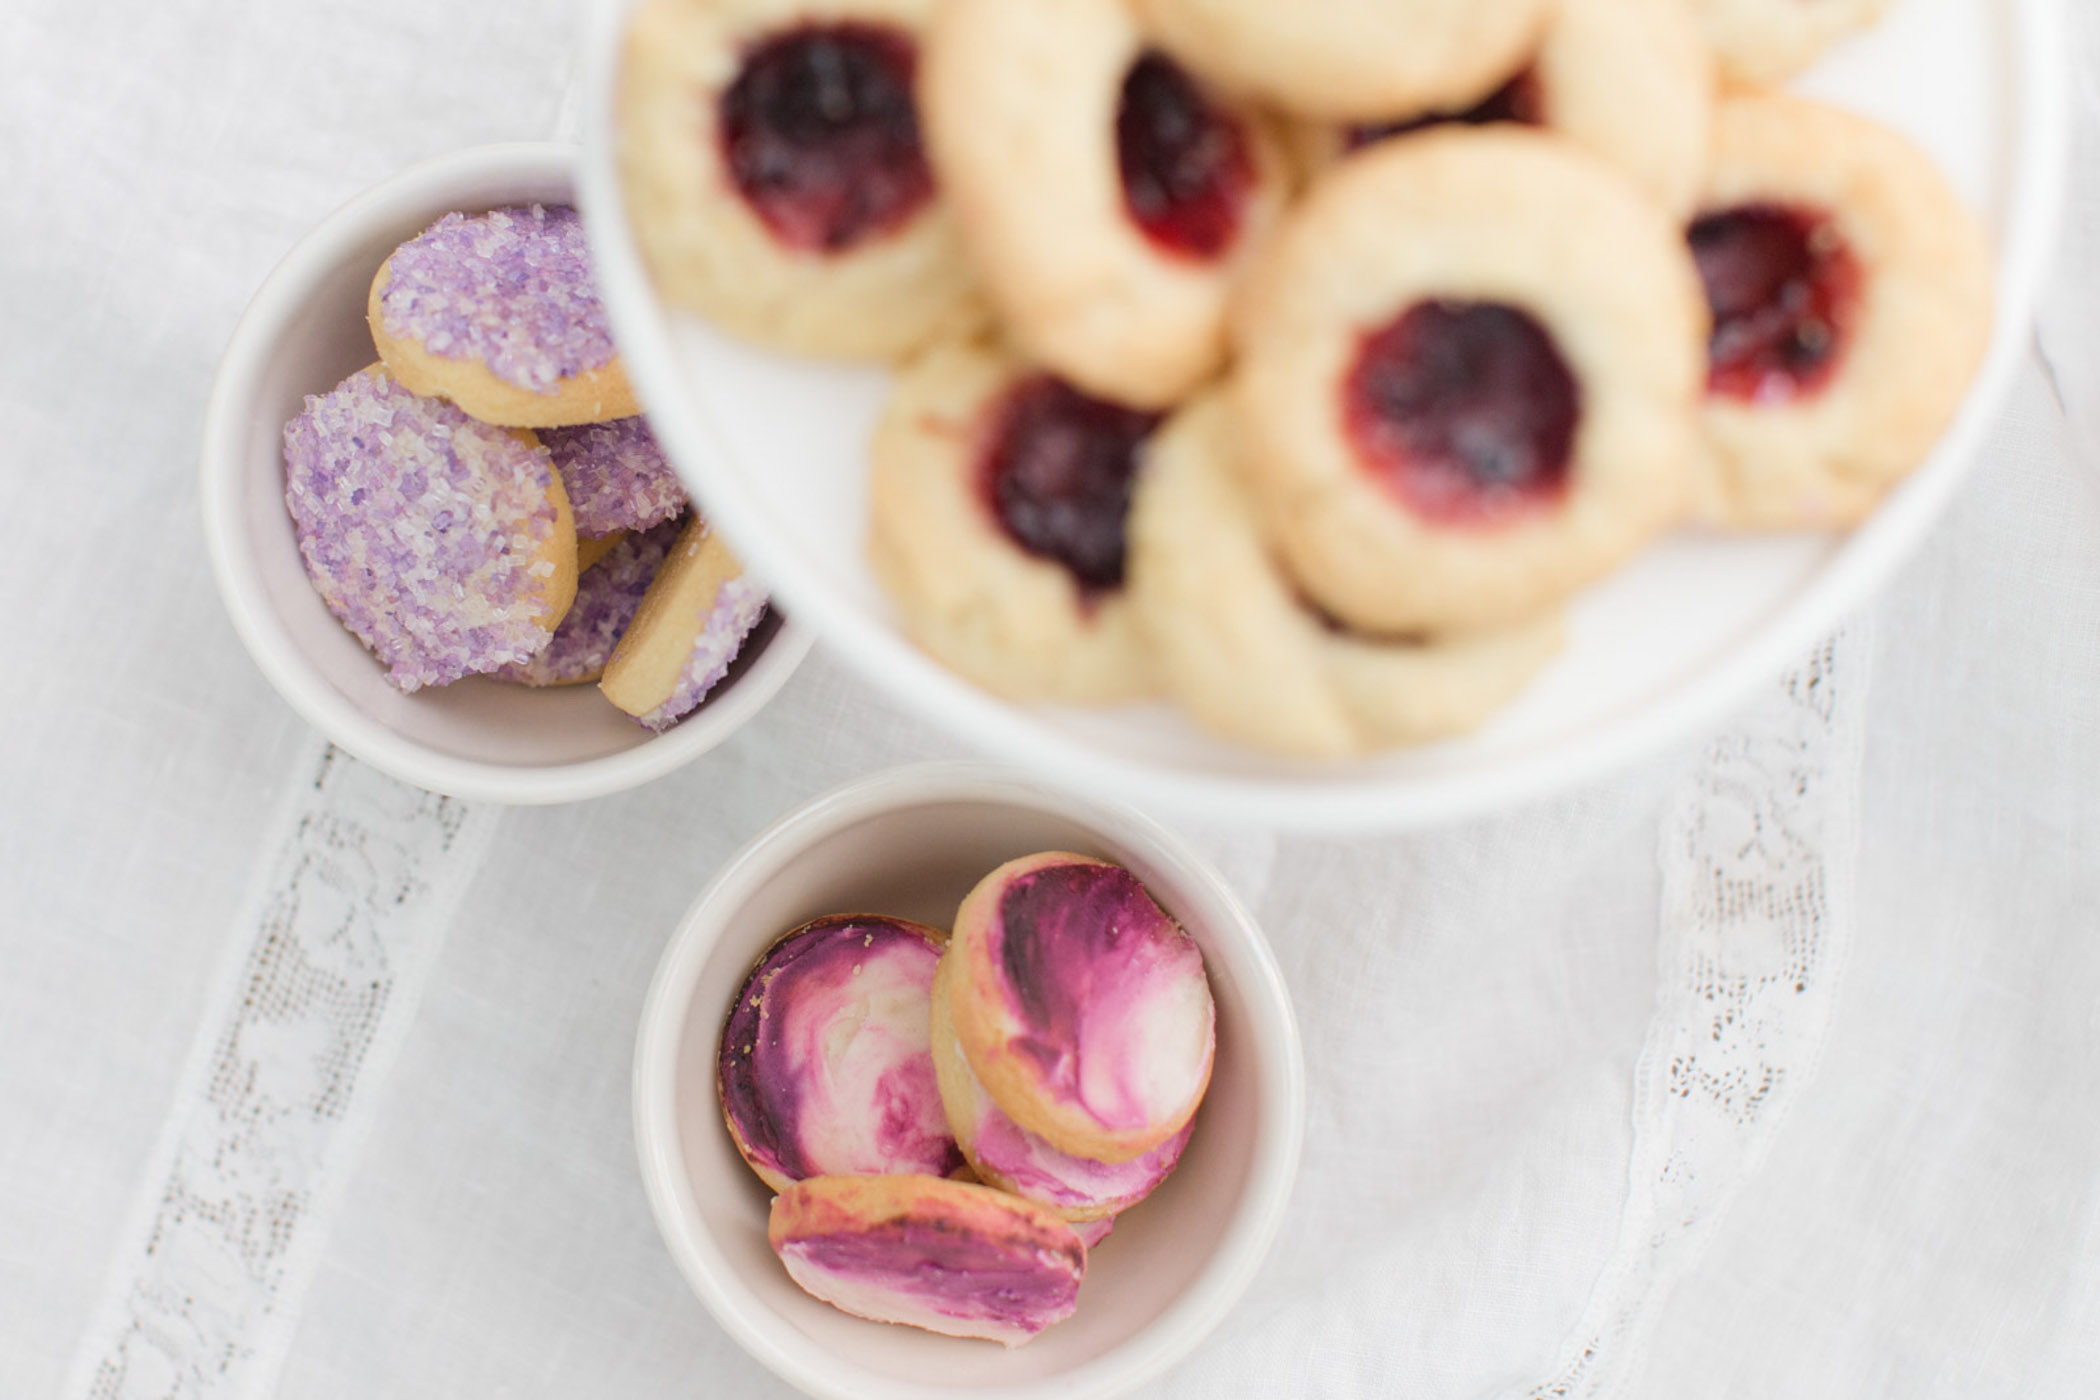 Blackberry thumbprints and pixie sugar cookies by Forest Fairy Bakery in Issaquah, WA